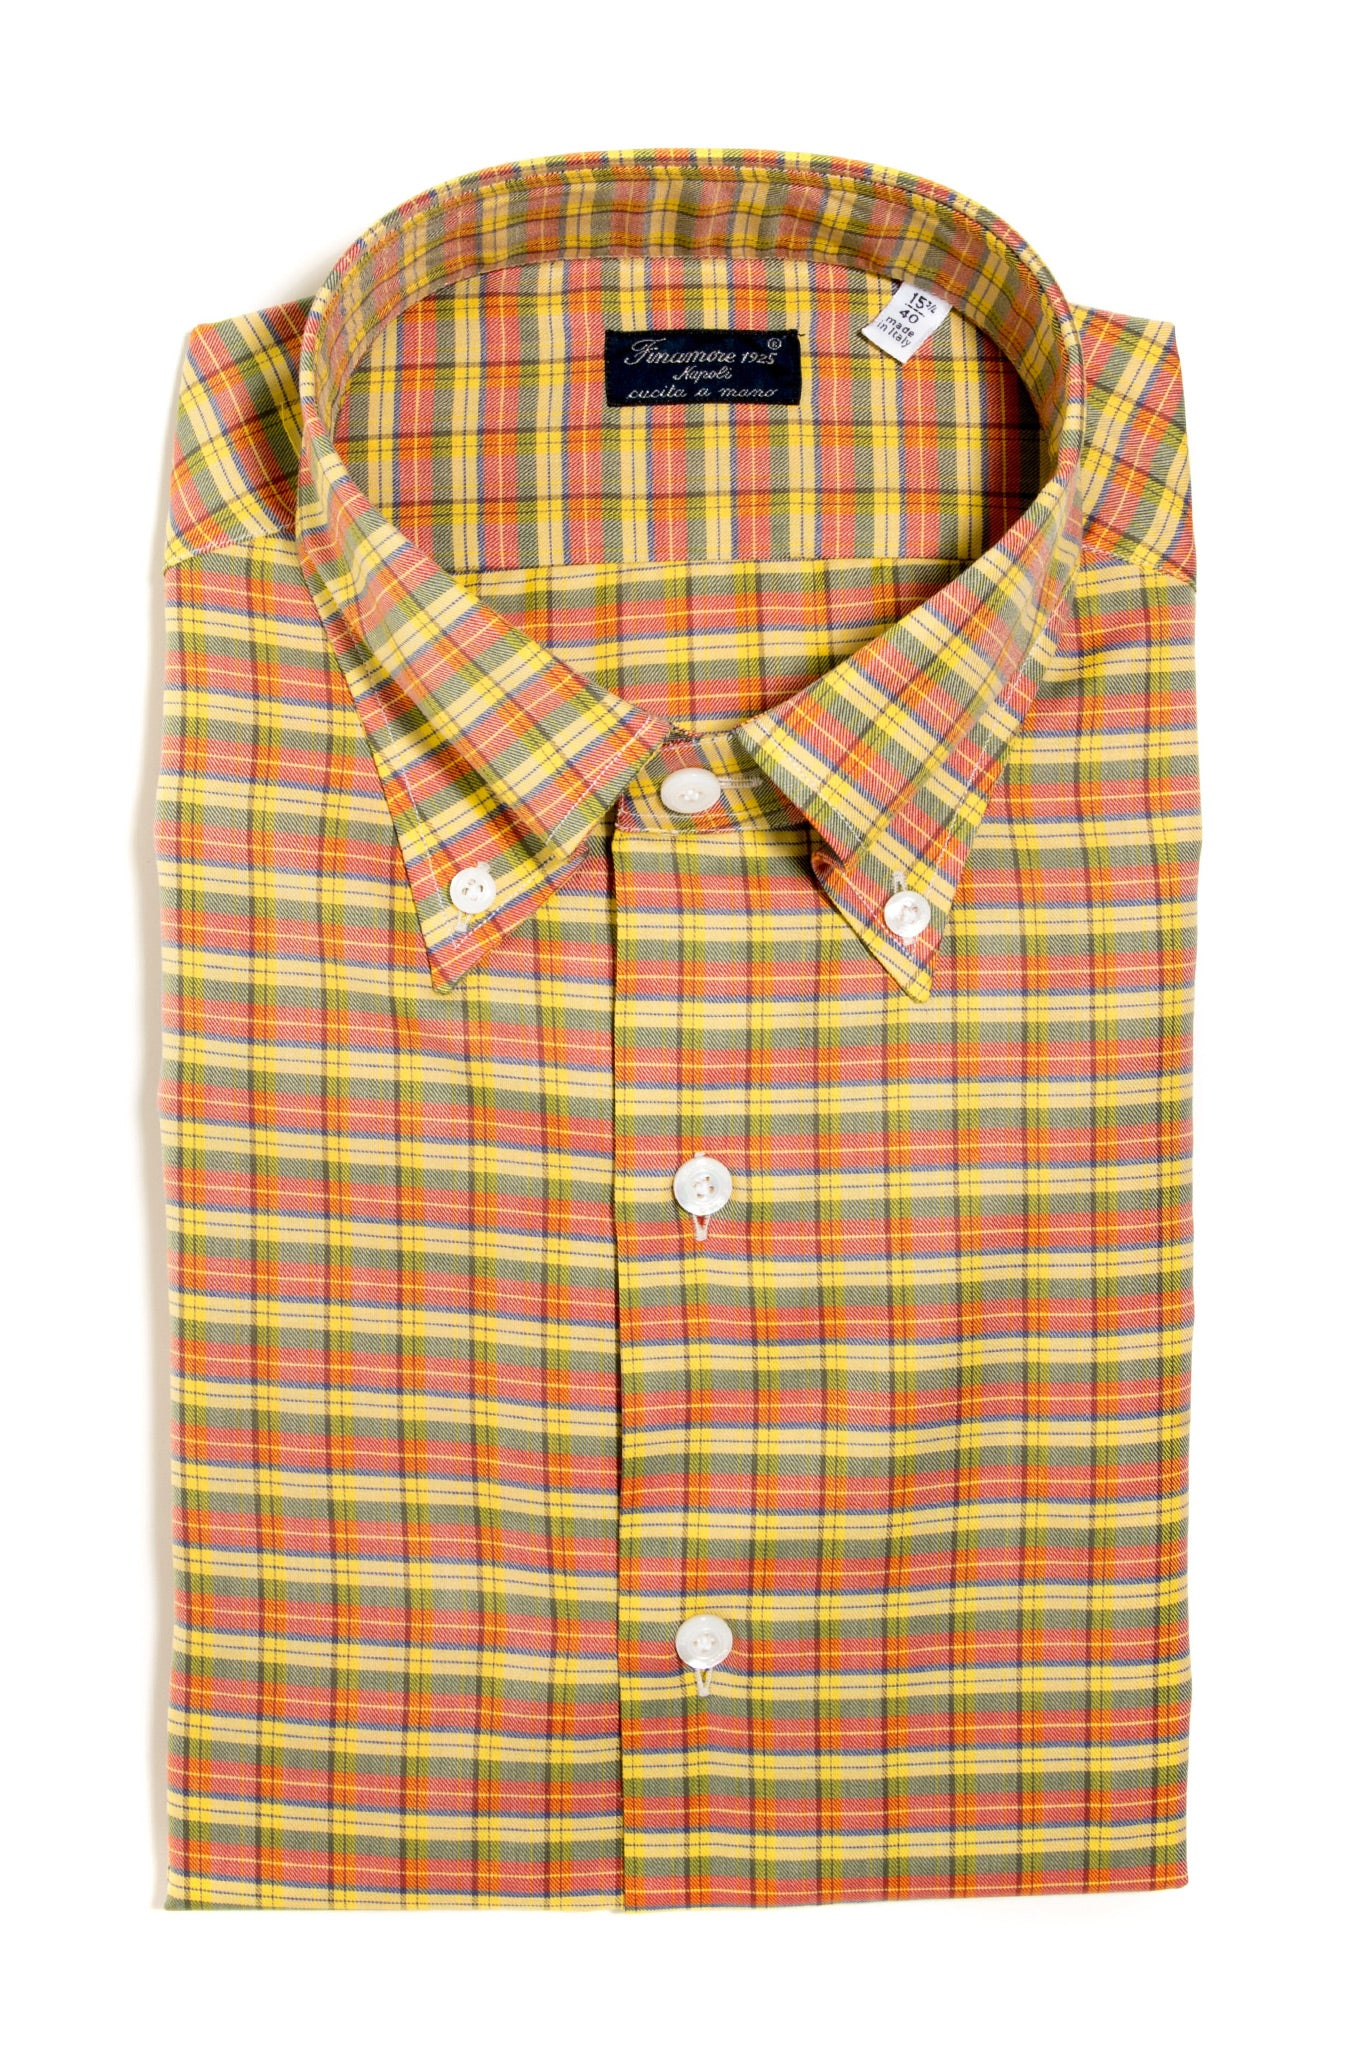 Finamore Lucarelli Twill Dress Shirt (147445284888)